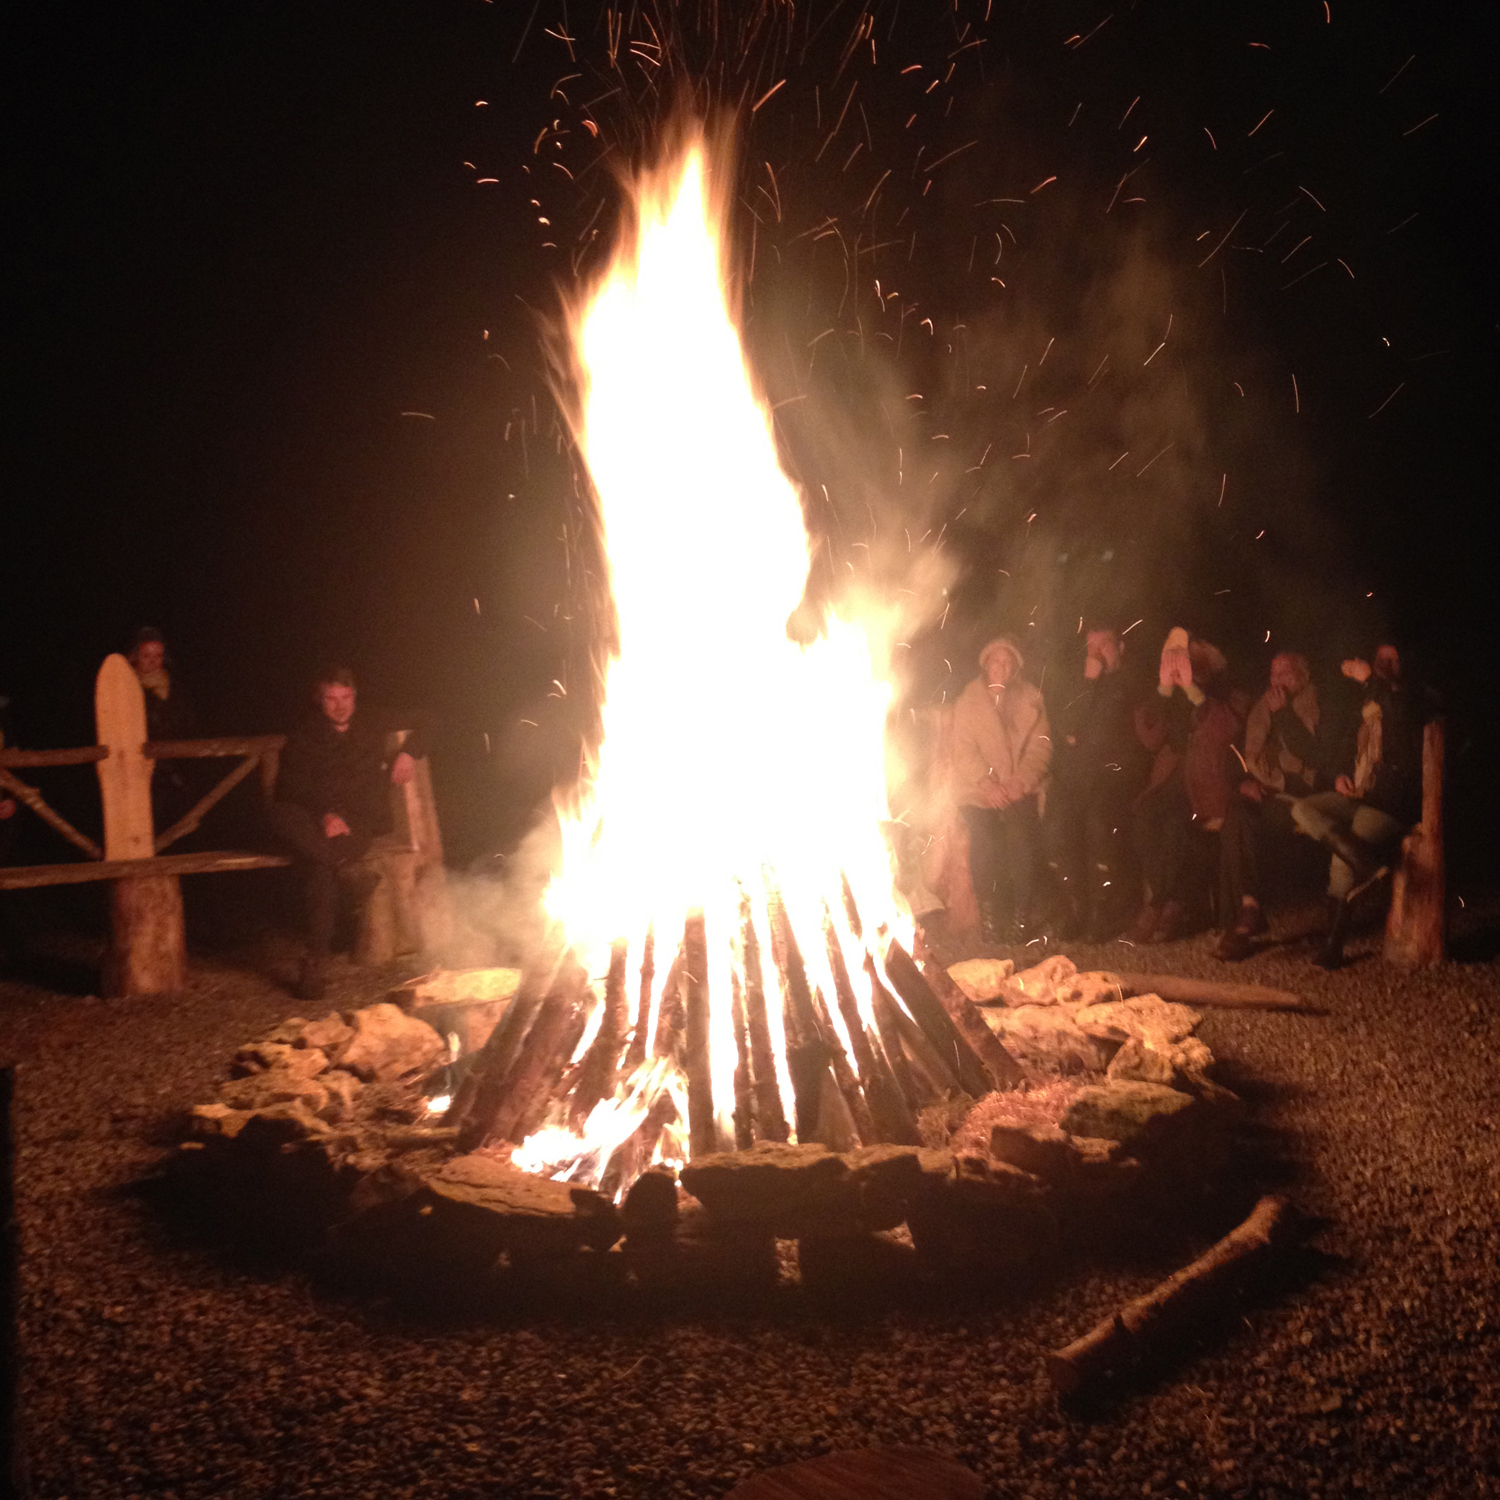 We shared poems, stories and songs around this magical bonfire